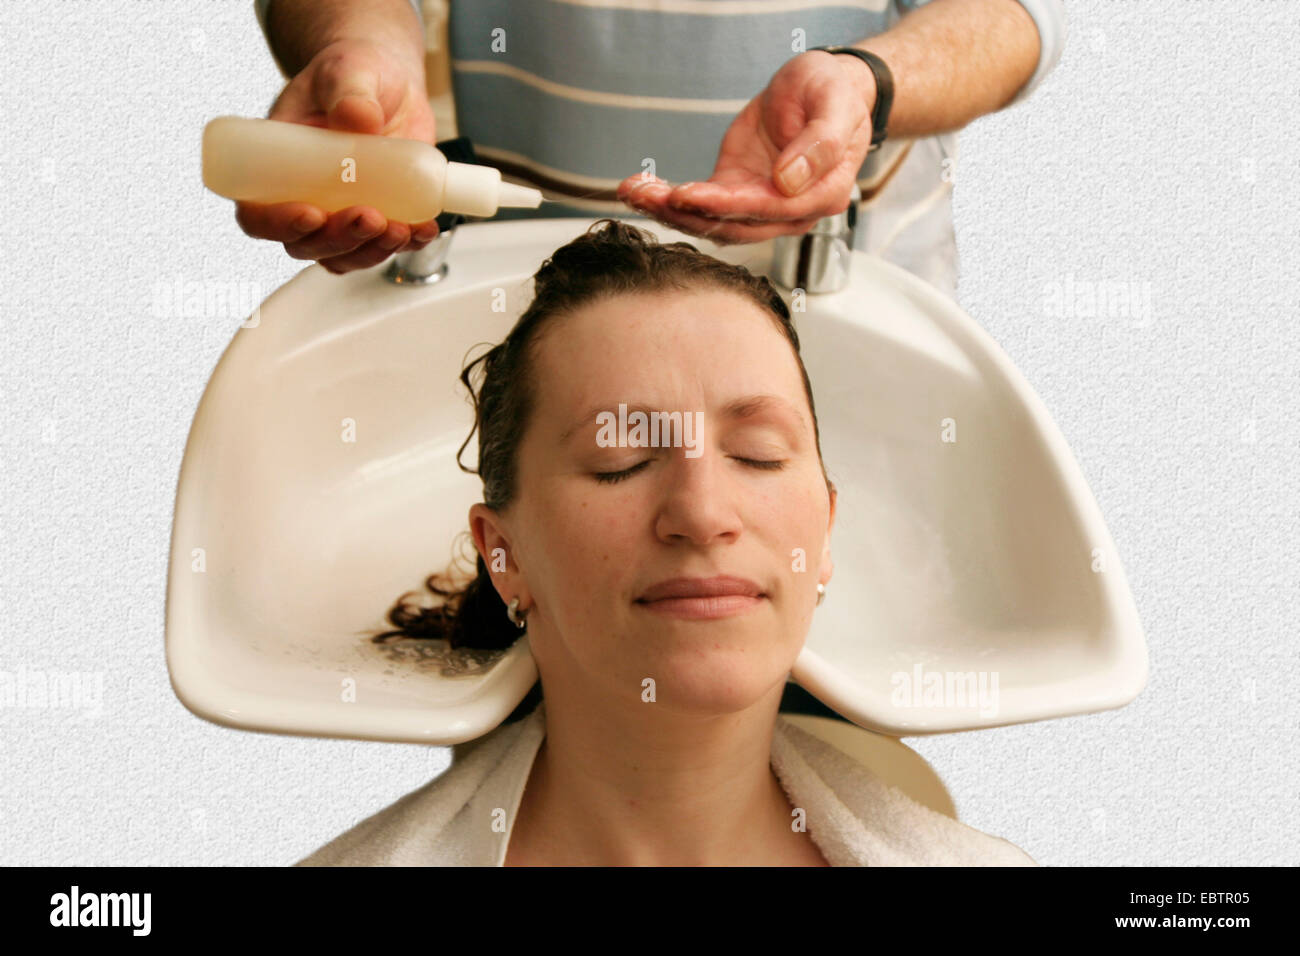 hairdresser washing hairs of a woman - Stock Image